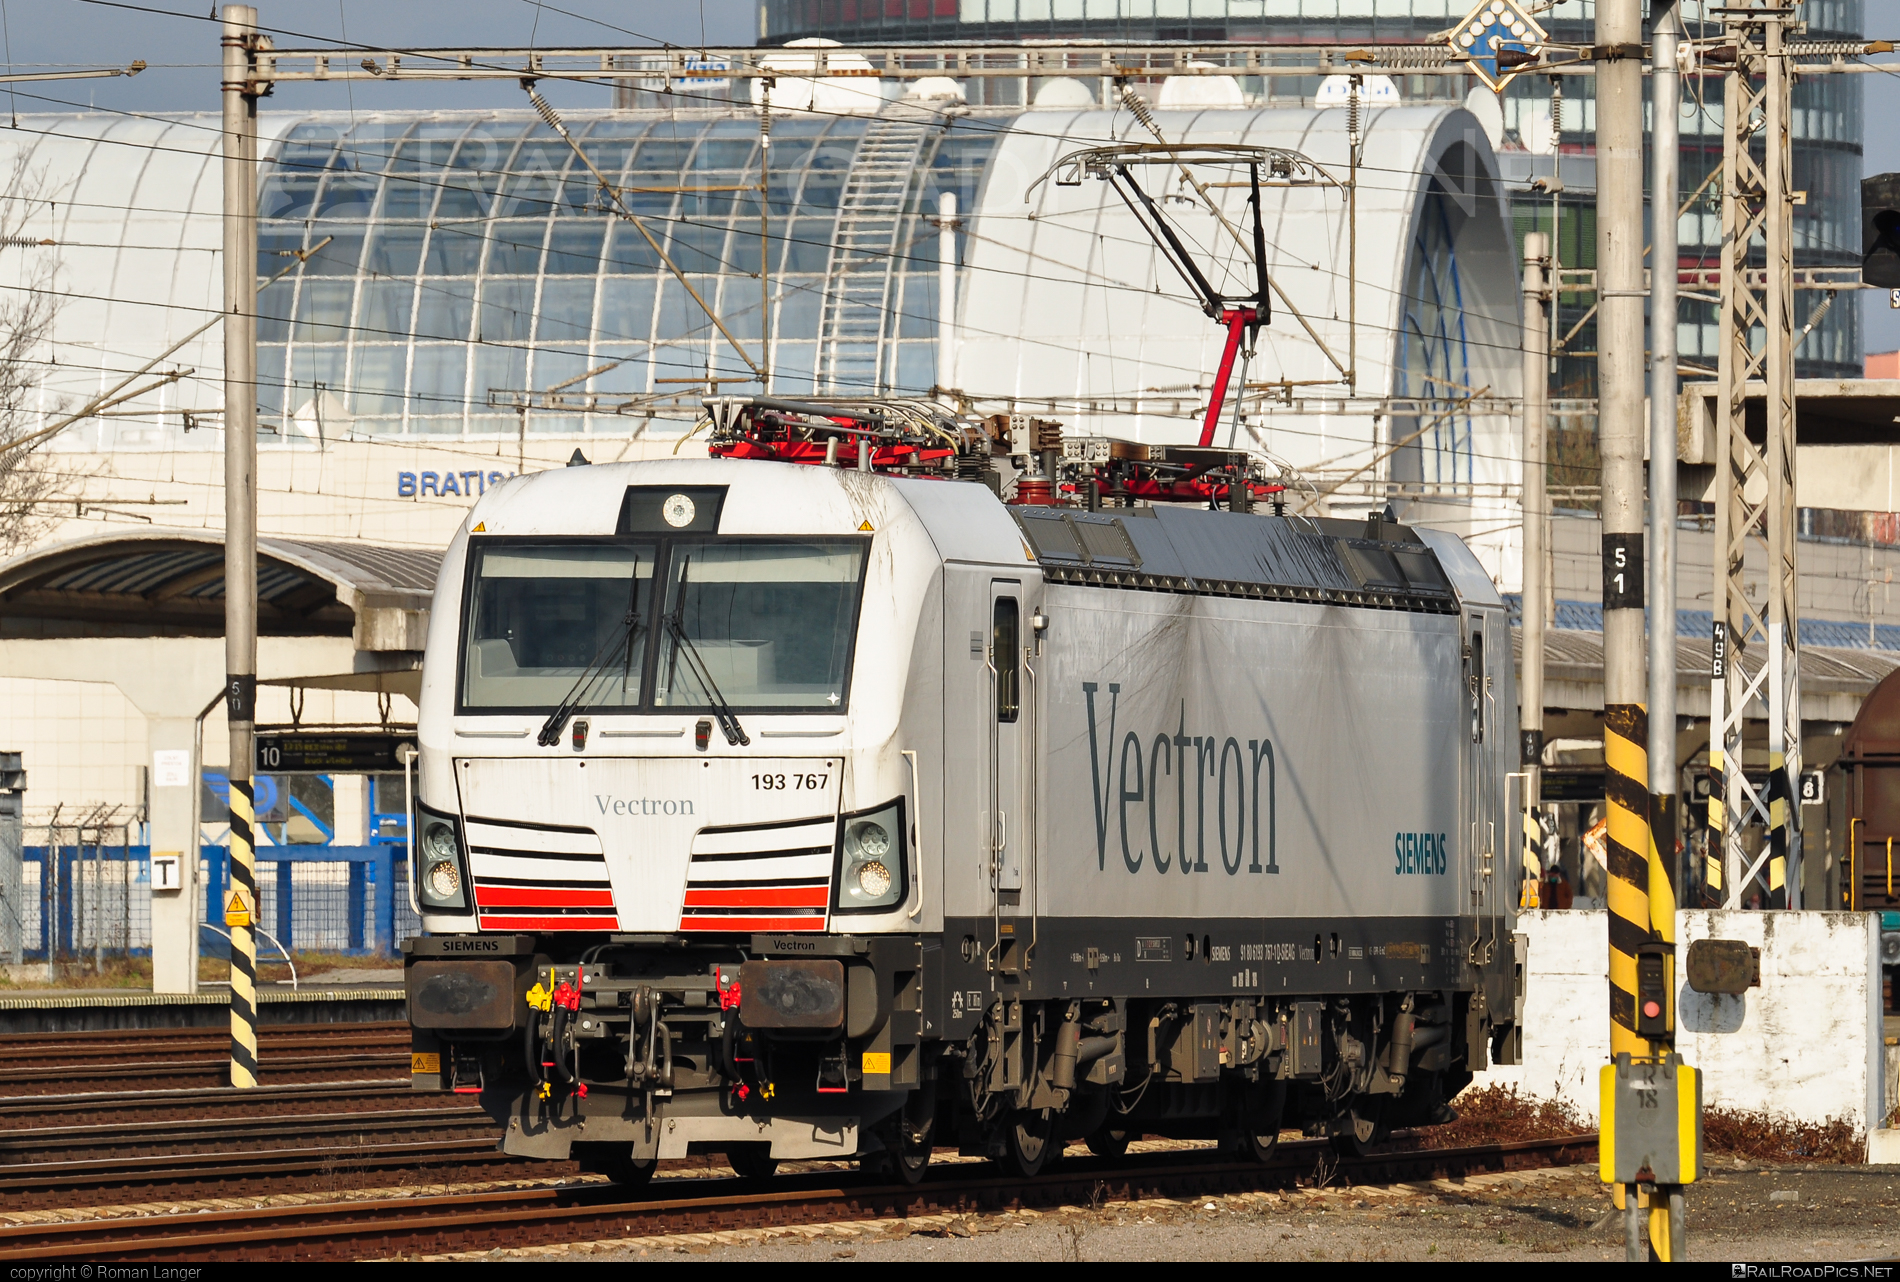 Siemens Vectron MS - 193 767 operated by ecco-rail GmbH #SiemensMobility #SiemensMobilityGmbH #eccorail #eccorailgmbh #siemens #siemensvectron #siemensvectronms #vectron #vectronms